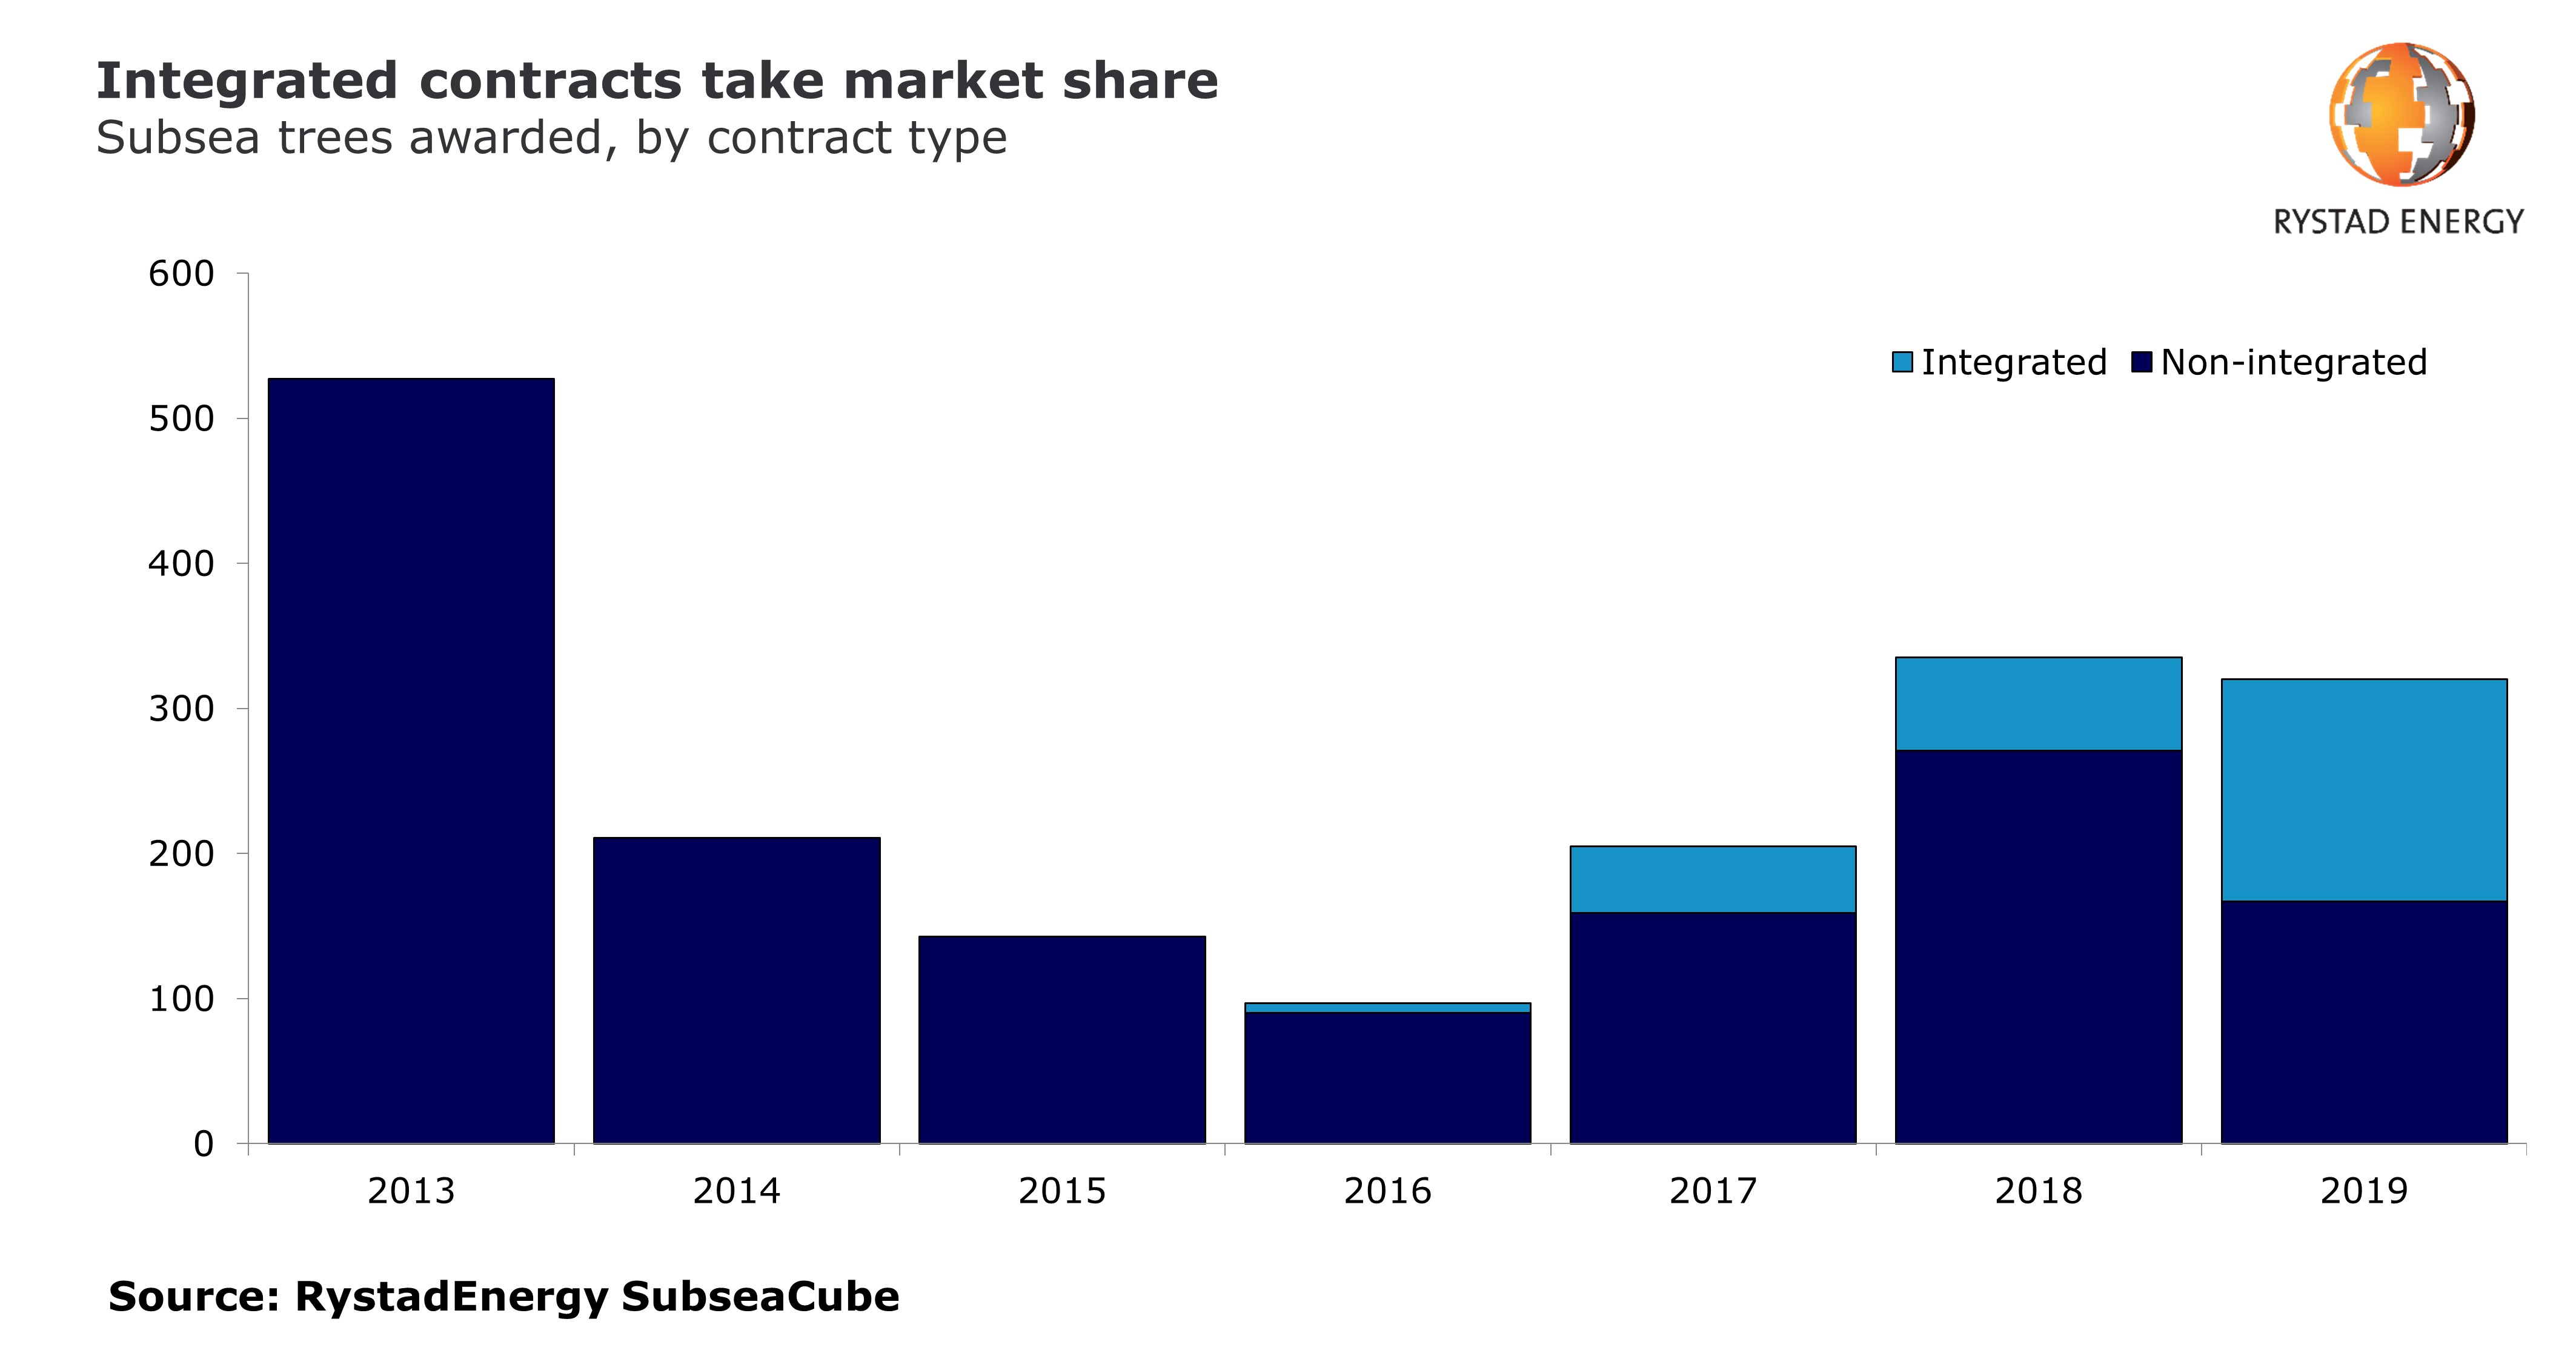 Bar chart showing subsea trees awarded by contract type from 2013 to 2019